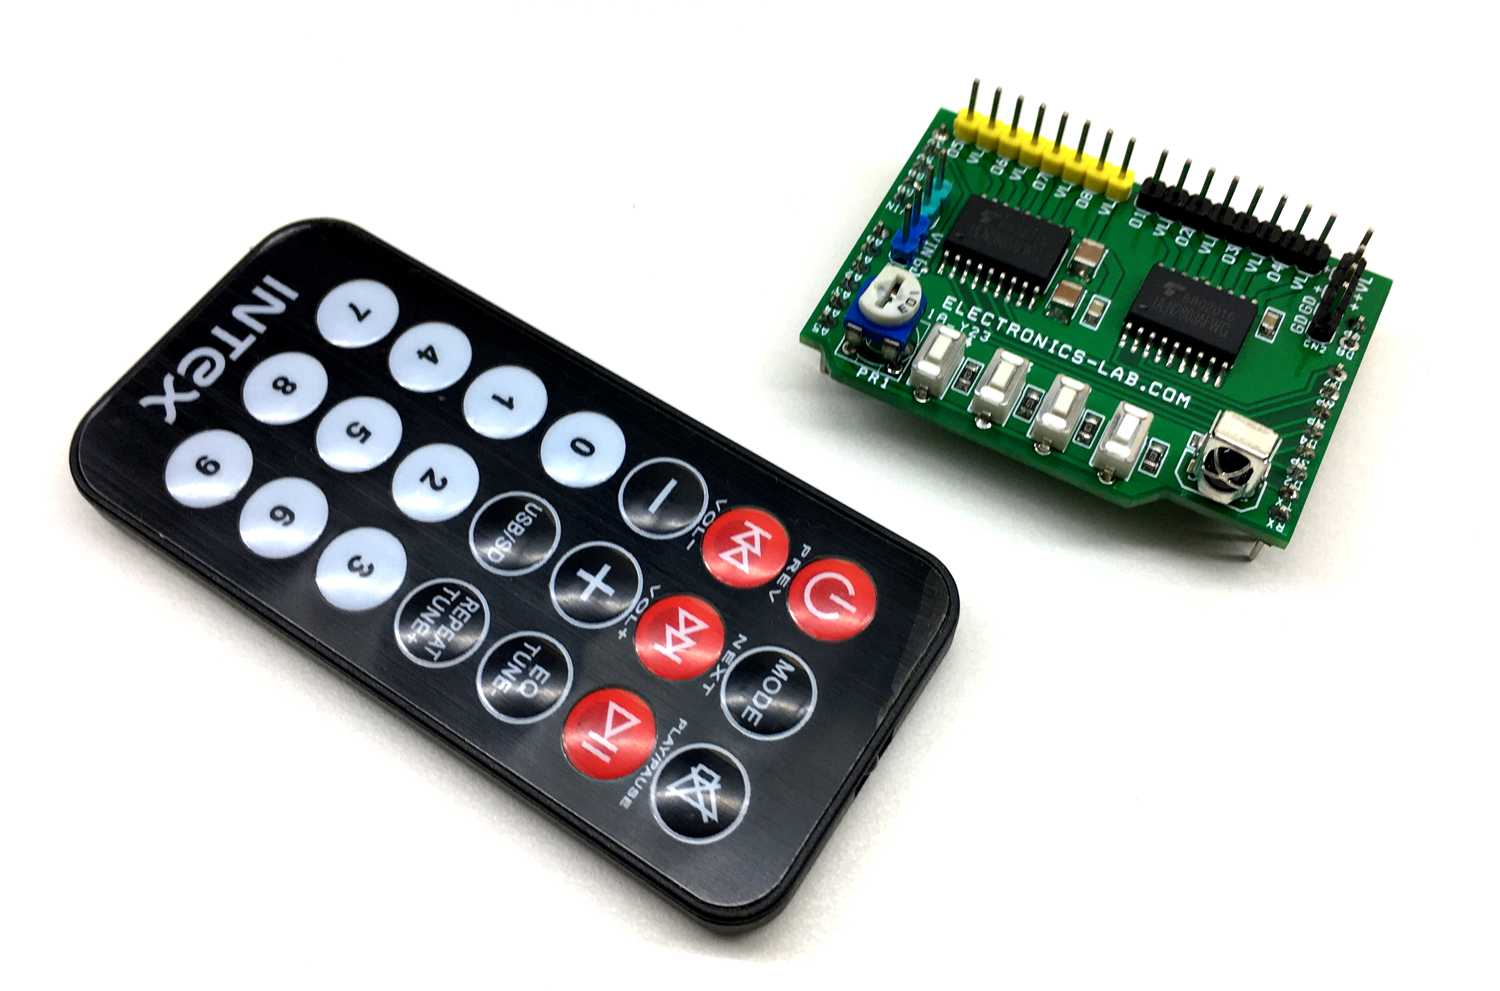 8 Channel Infra-Red Remote-Control Arduino Shield Using ULN2803